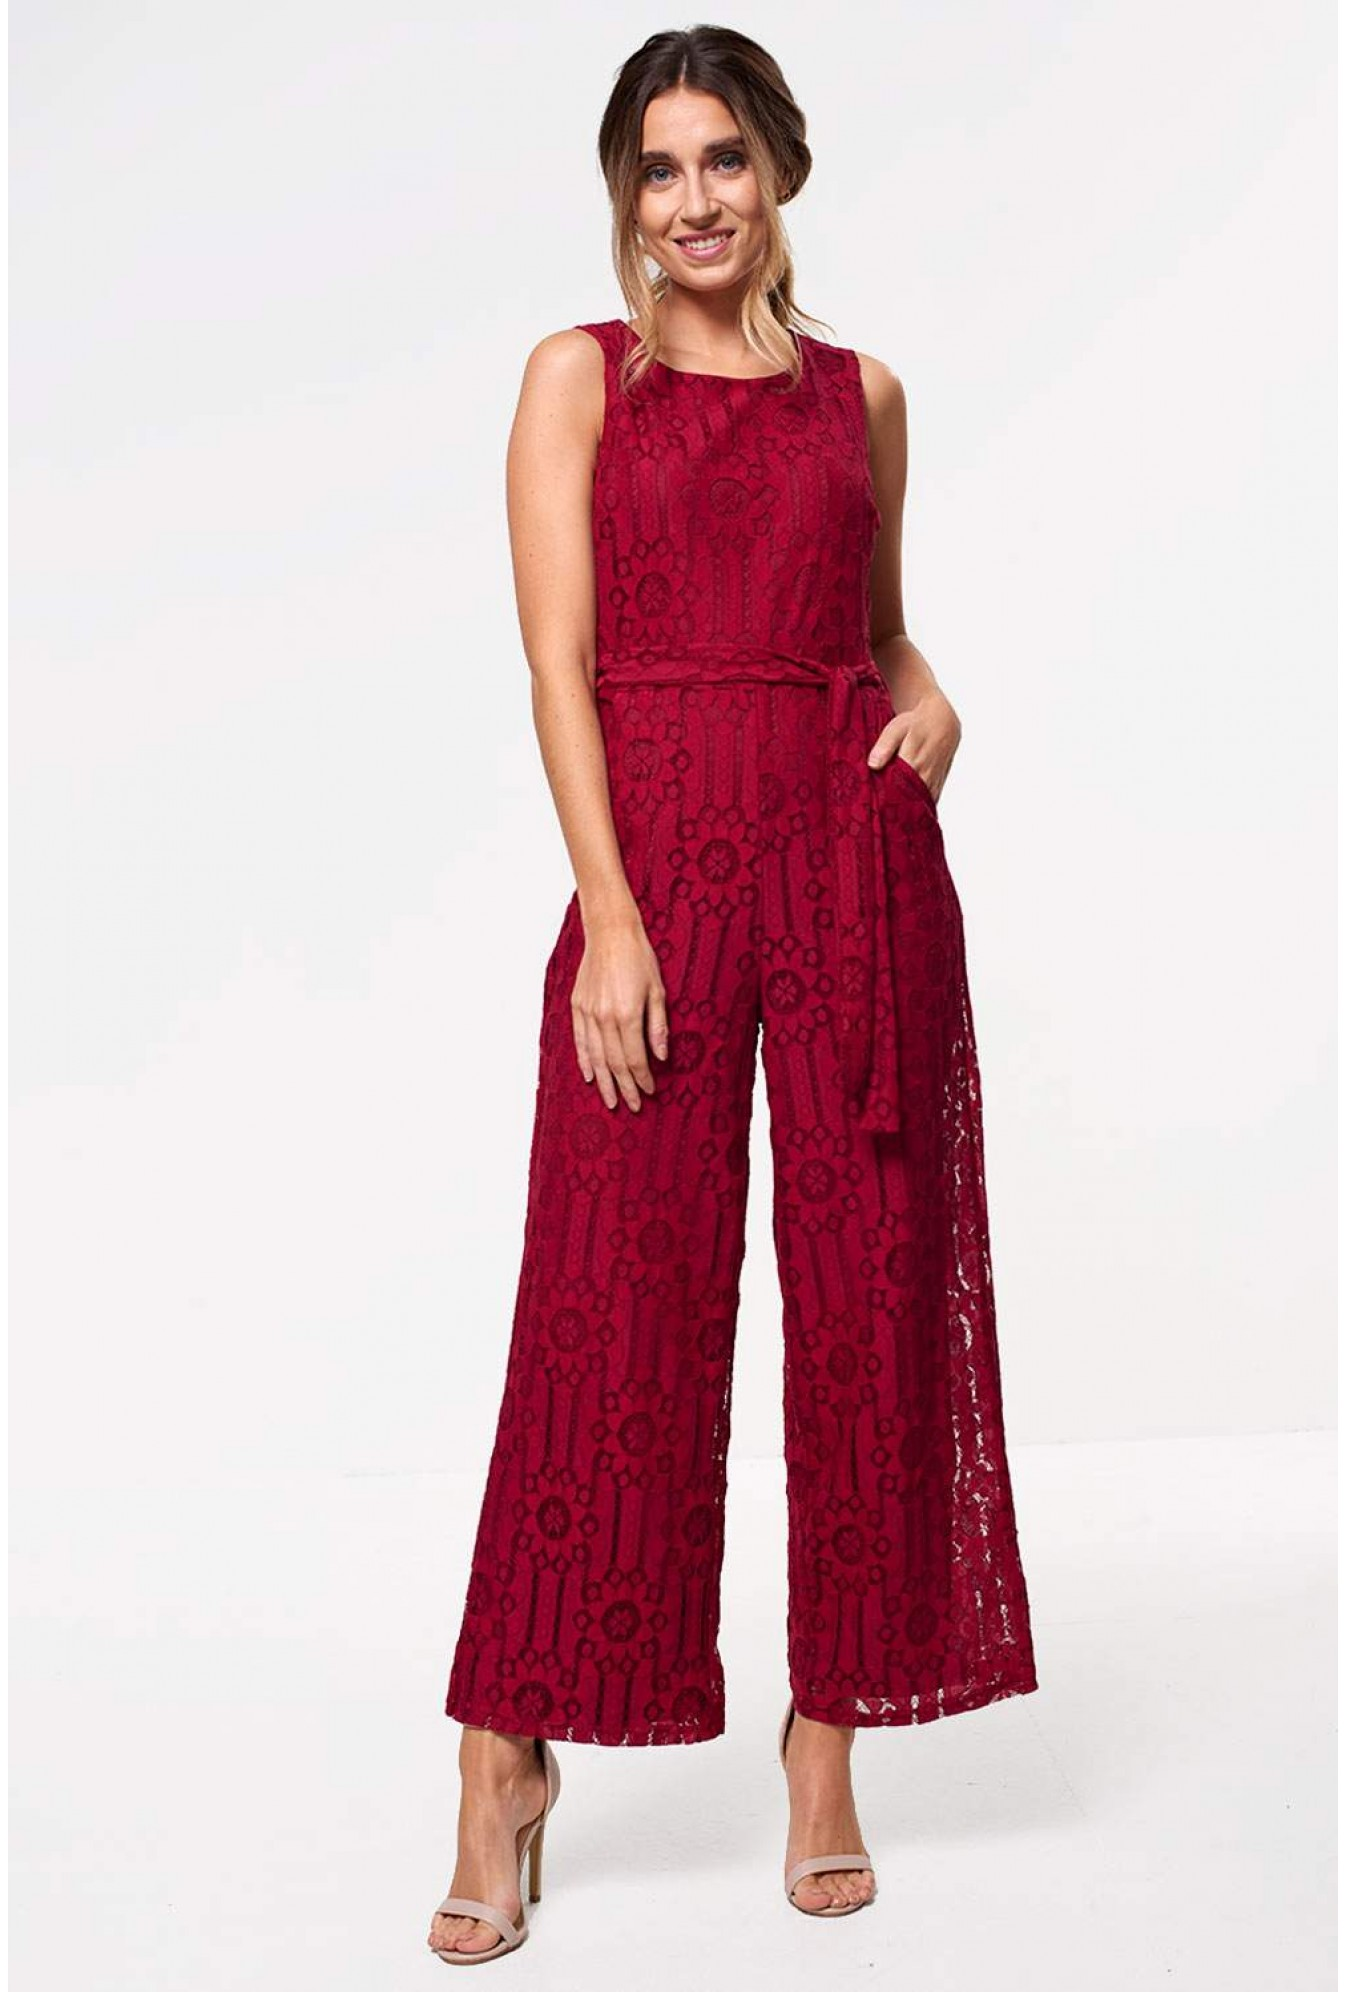 032b3b6b9938 Marc angelo donna occasion crochet jumpsuit in wine iclothing jpg 1345x1992 Wine  jumpsuit